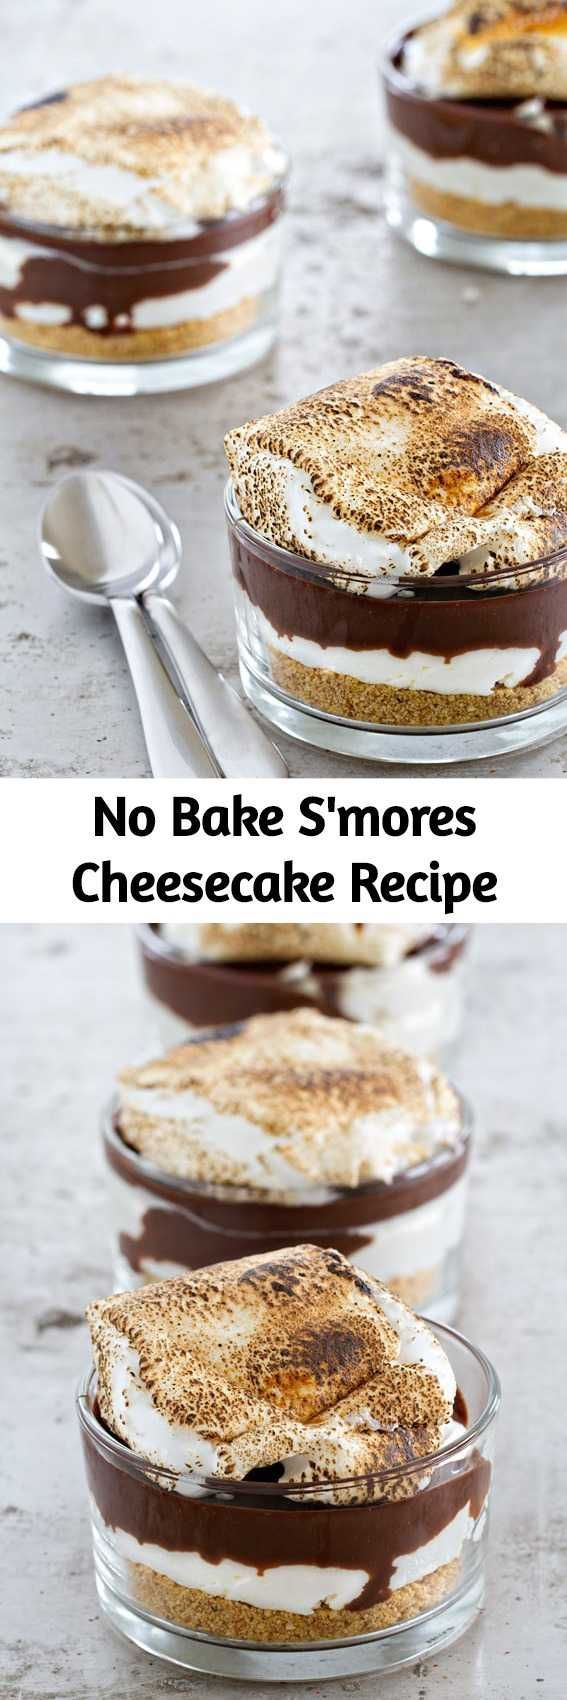 No Bake S'mores Cheesecake Recipe Cheesecake, chocolate ganache and graham cracker crumbs are... No Bake S'mores Cheesecake Recipe Cheesecake, chocolate ganache and graham cracker crumbs are the start of a pretty terrific dessert. Top this no-bake dessert with a gooey roasted marshmallow to create summer dessert perfection.,